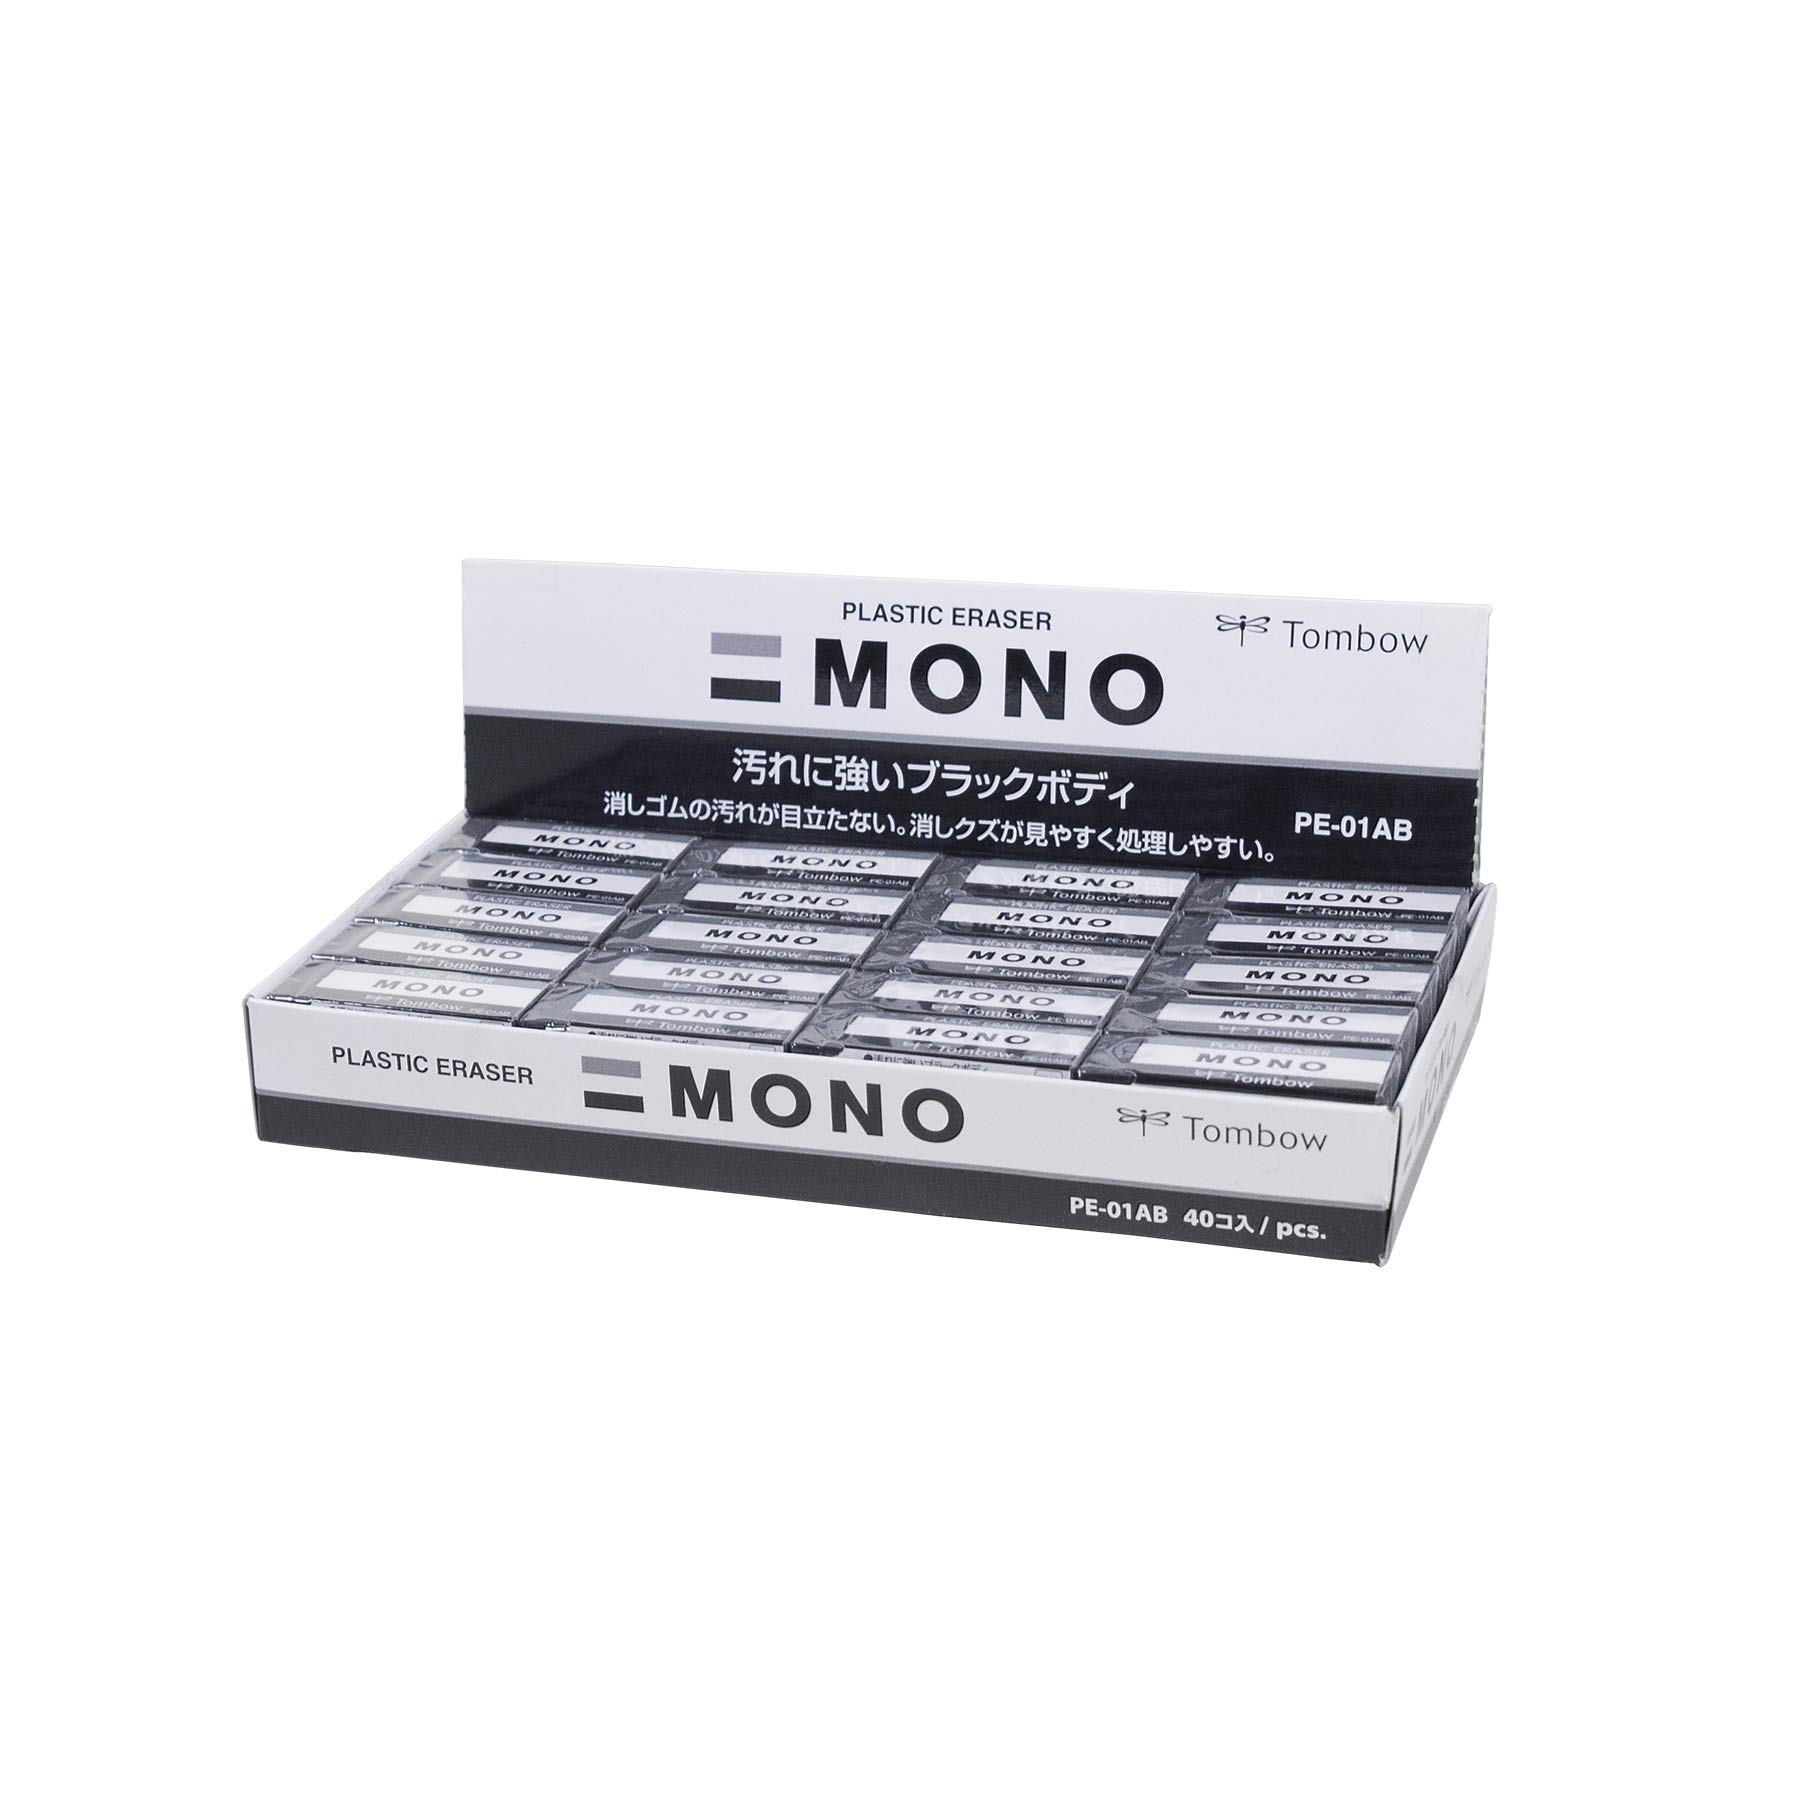 TOMBOW Mono Eraser, Black, Small, 40 PC Box, Pack, Piece by Tombow